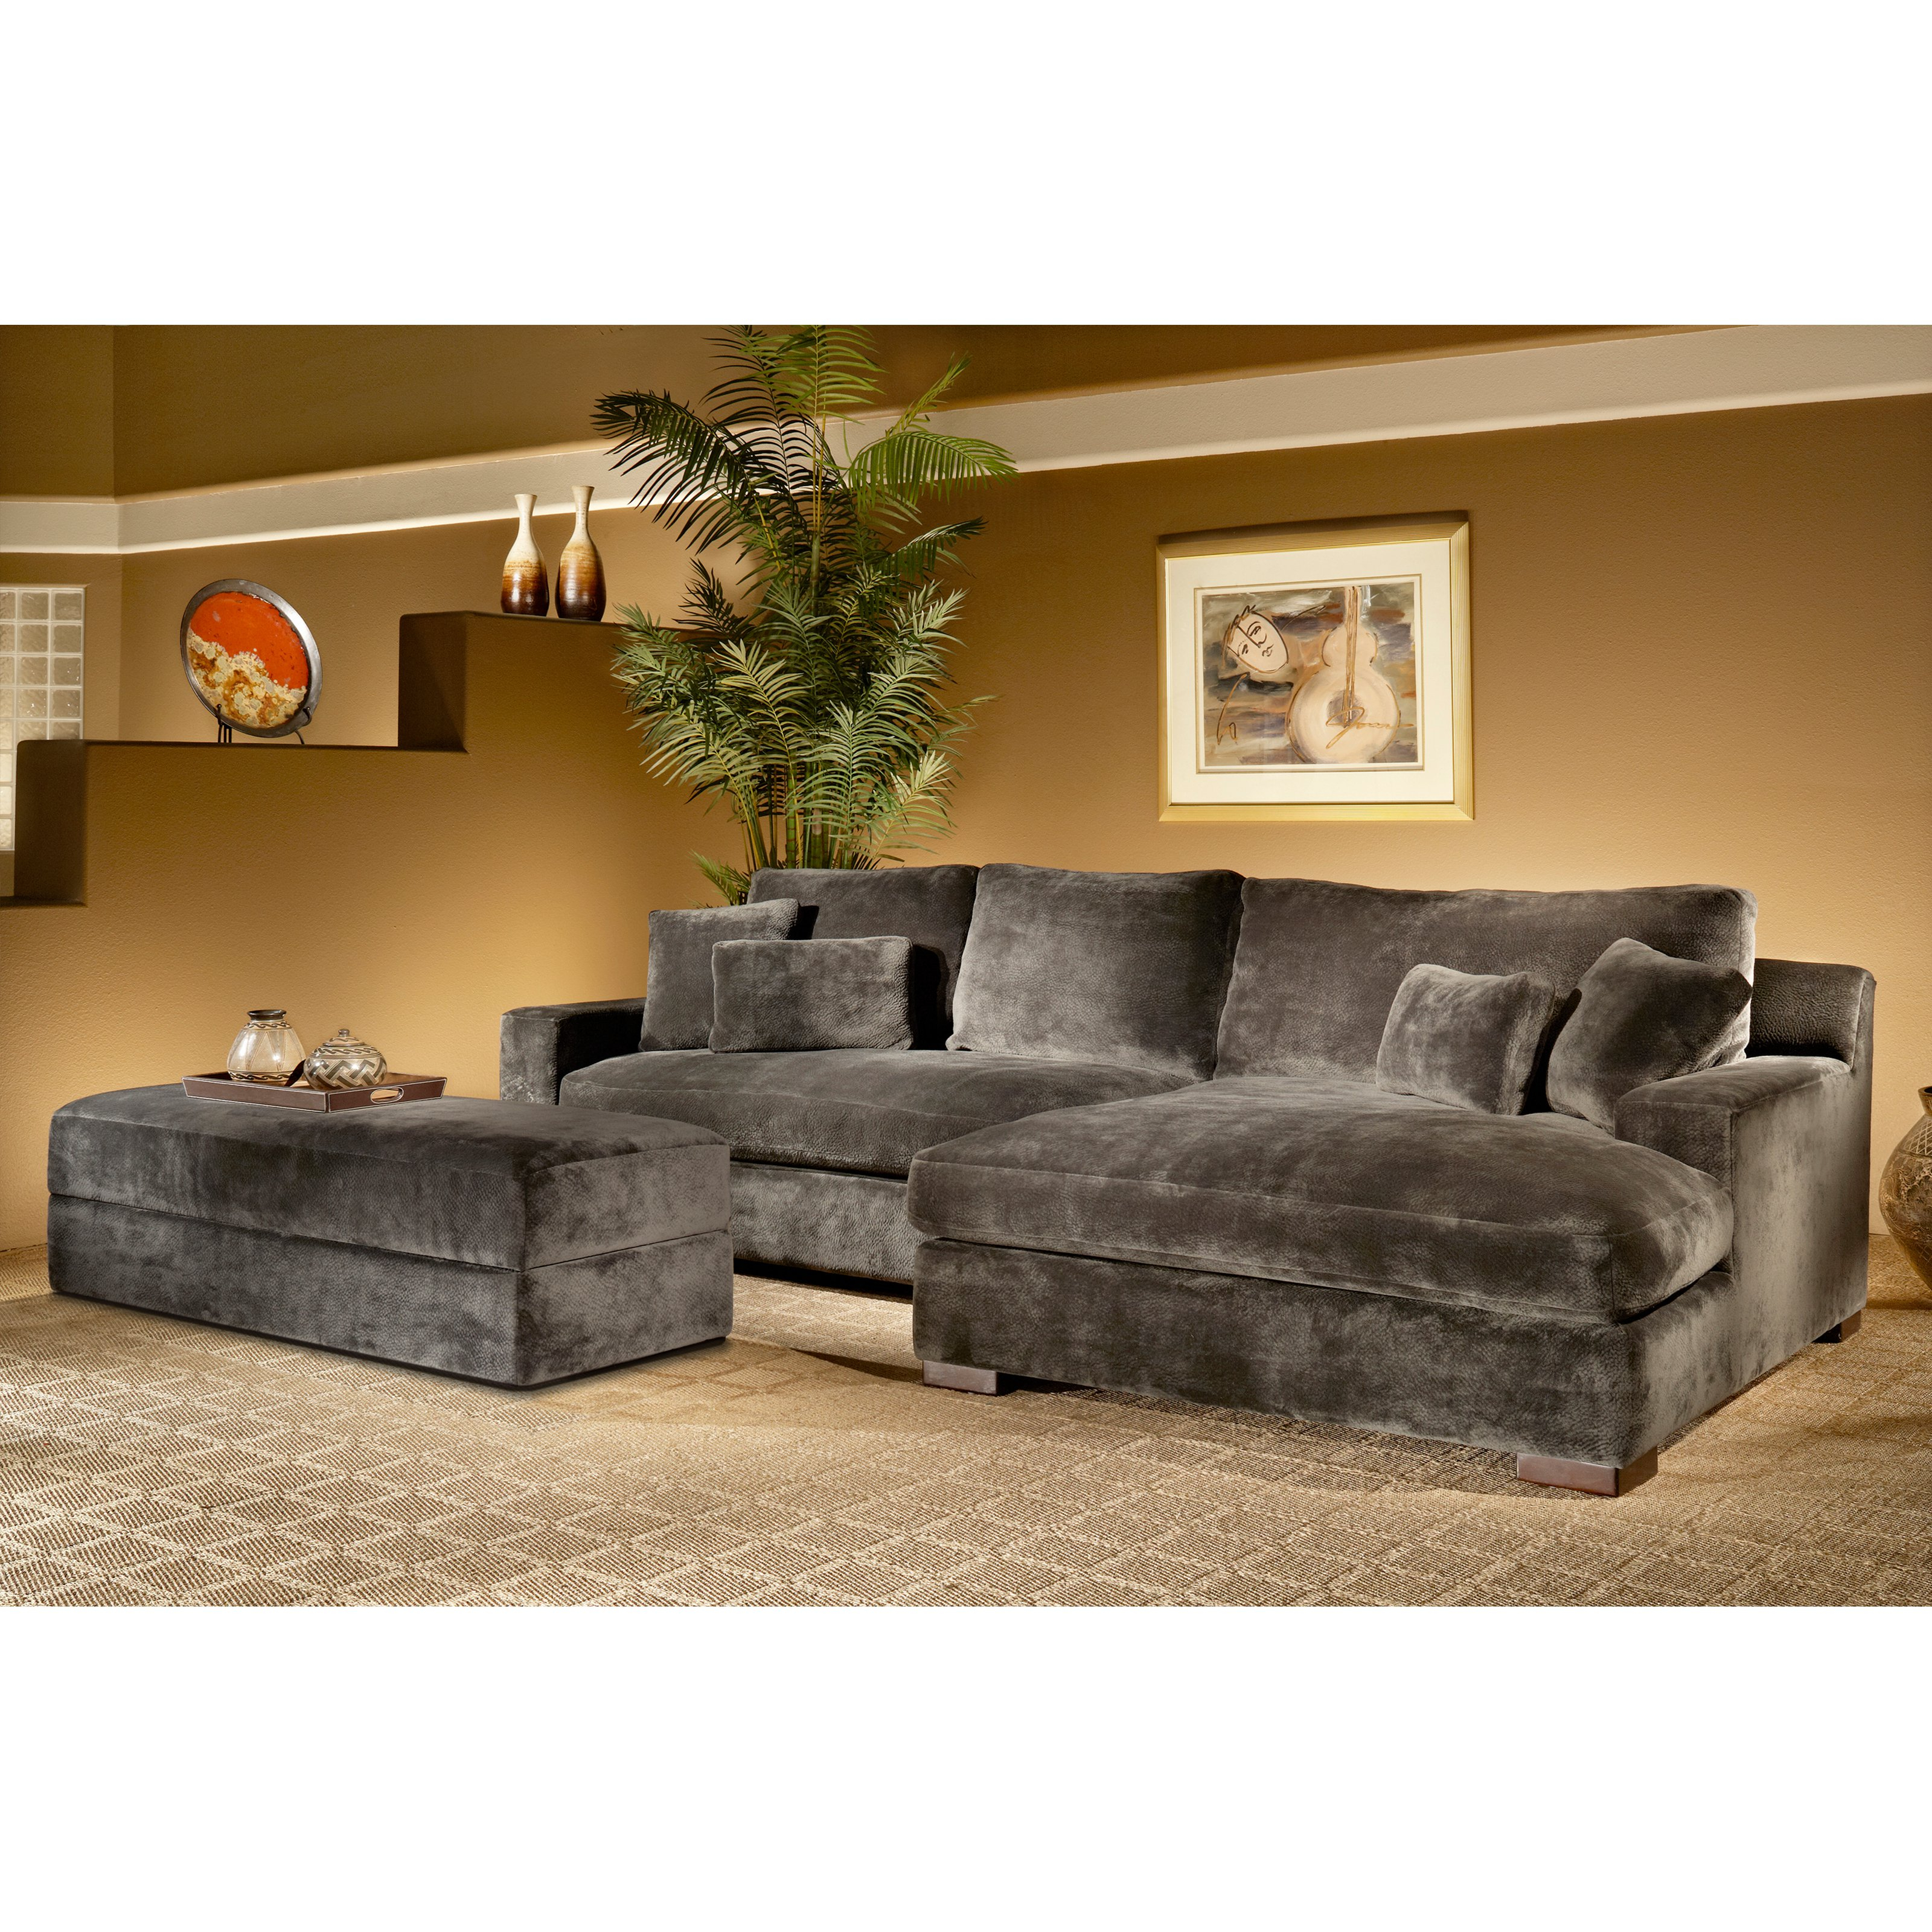 Transitional Sectional Comfy Amp Stylish Home Decor T In Most Recent Avery 2 Piece Sectionals With Raf Armless Chaise (View 20 of 20)